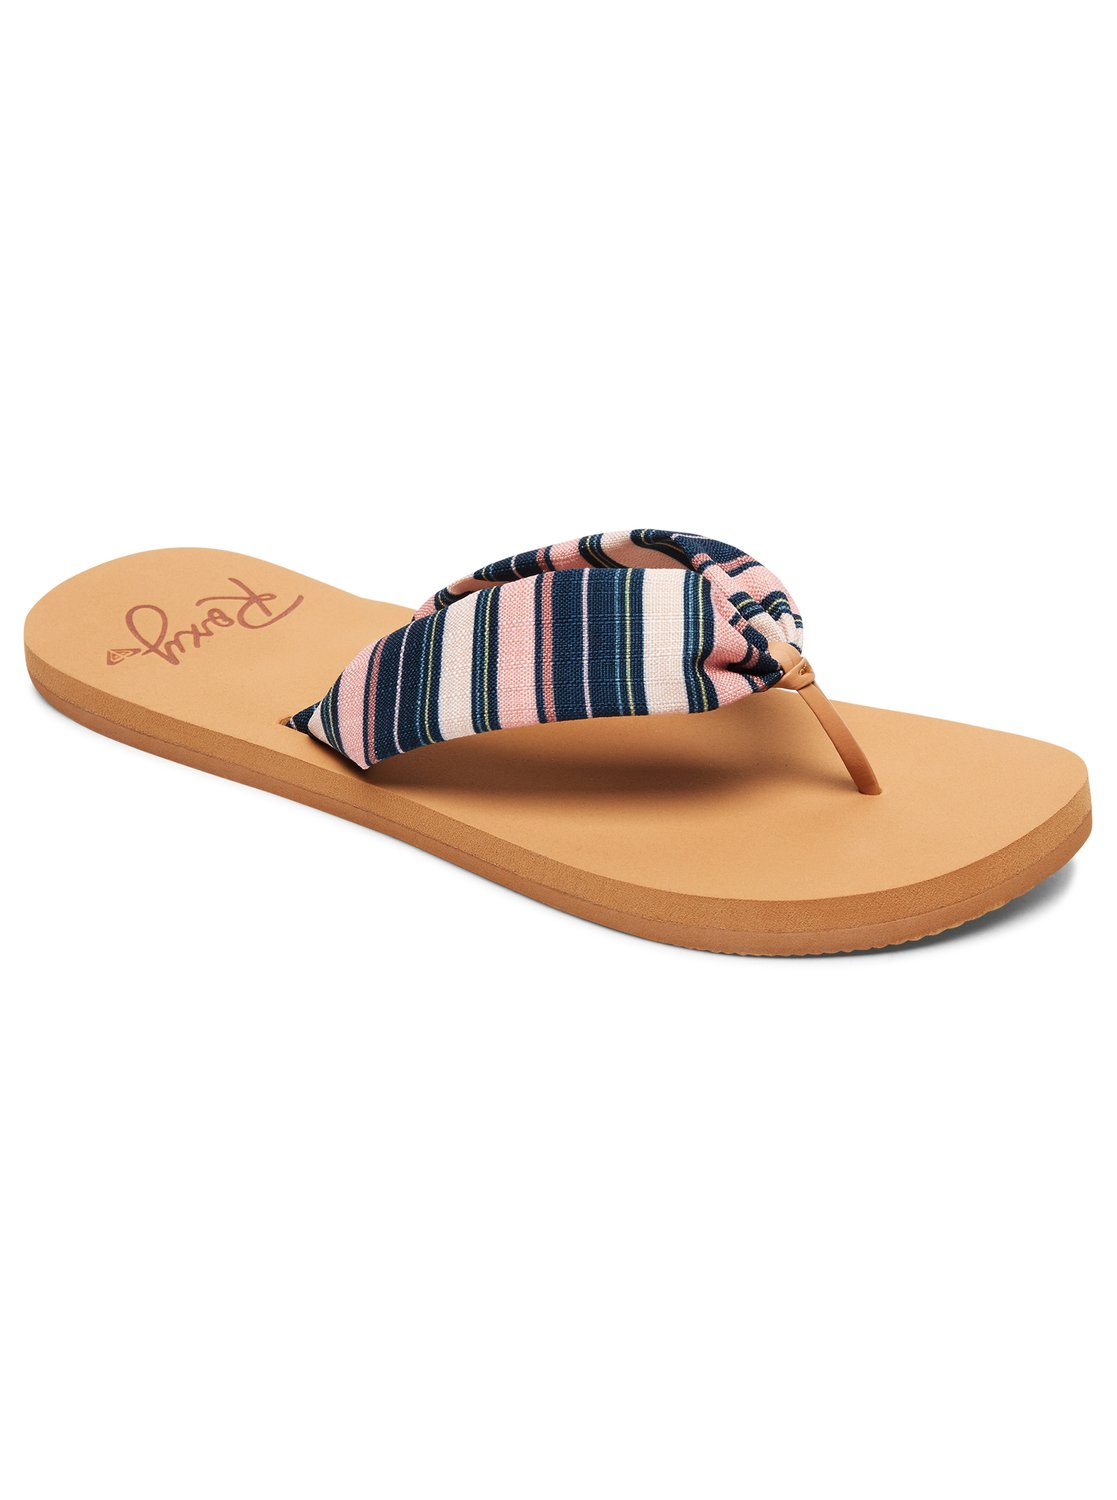 Paia Sandals Arjl100674 Roxy Tendencies Footbed 2 Strap Brown 42 0 Blue